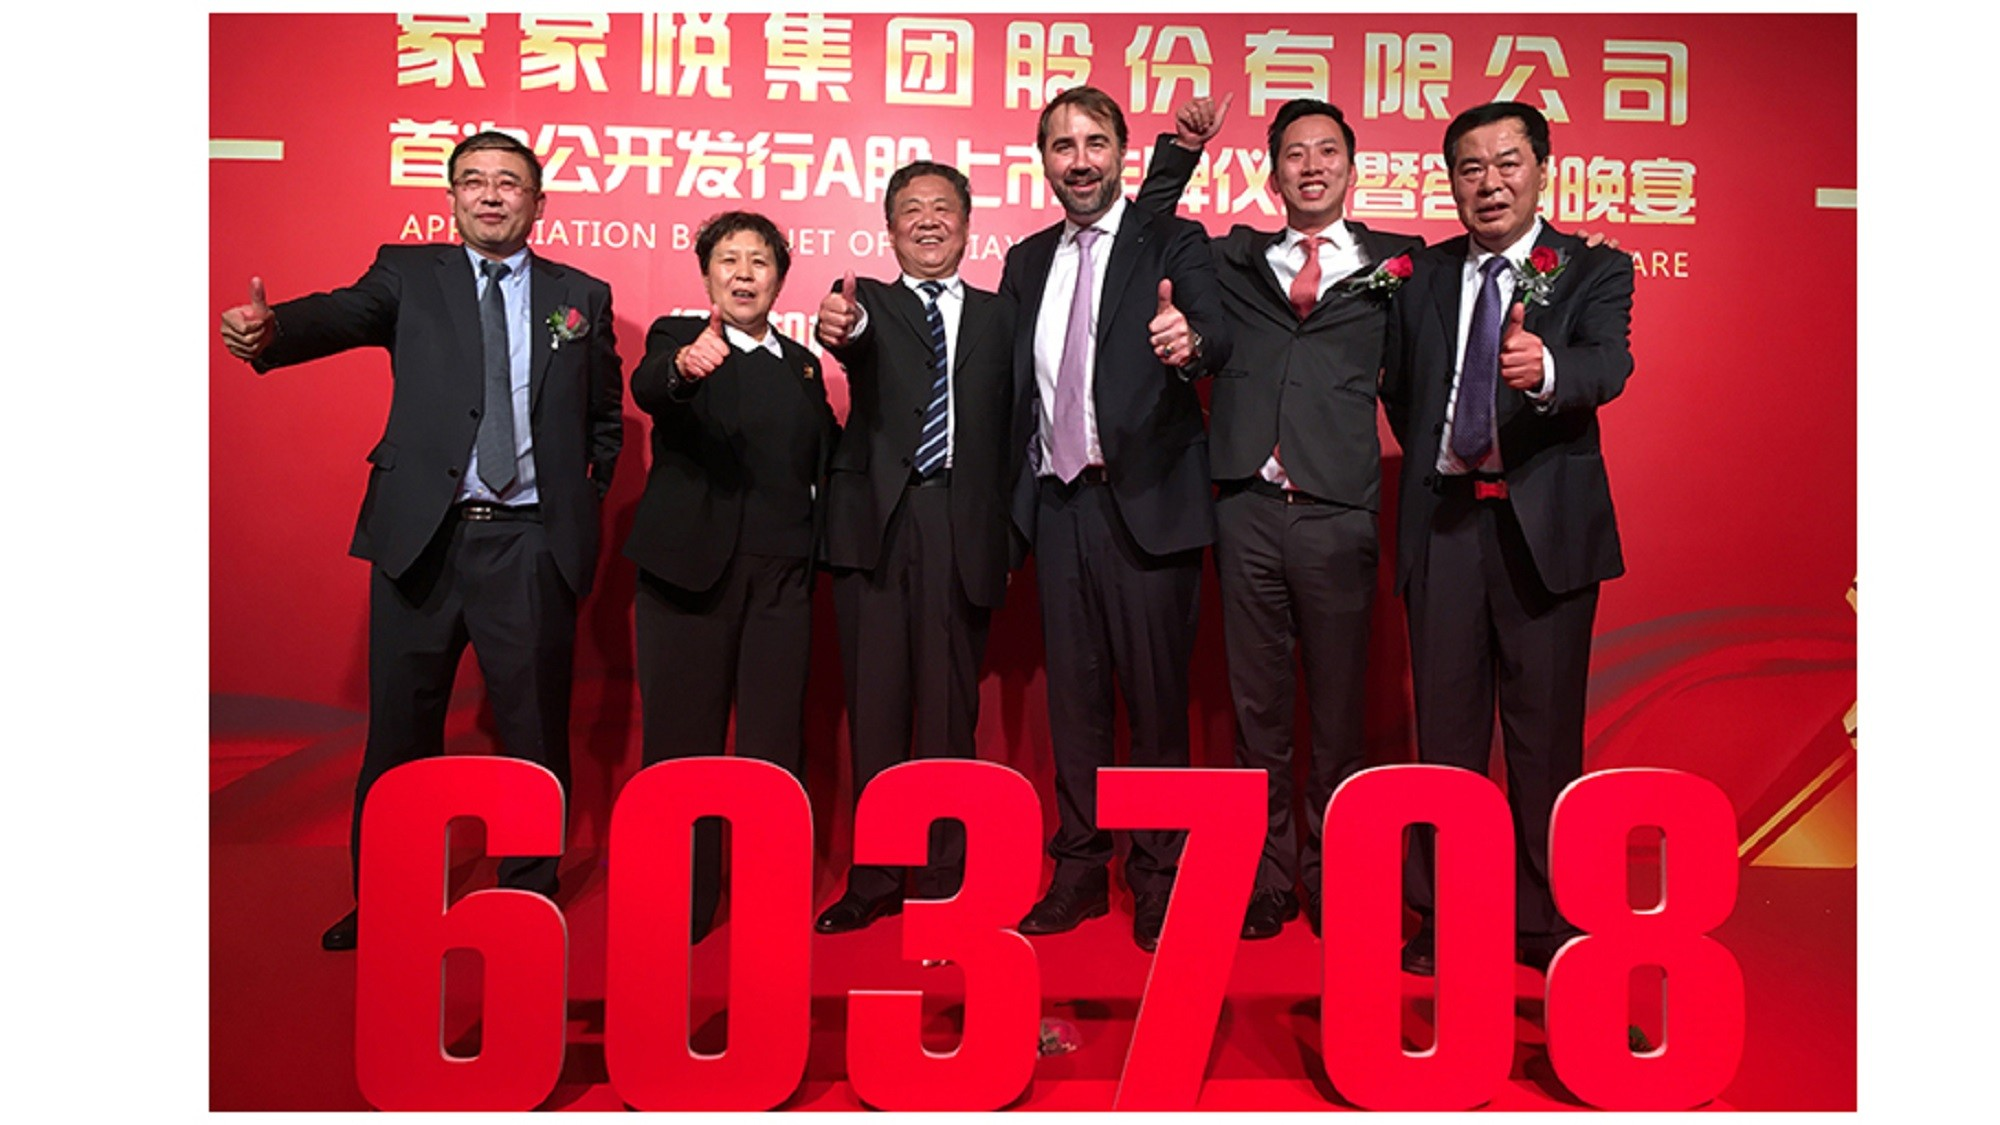 CN-Ding-Mingbo-Vice-GM-Fu-Yuanhui-Executive-Vice-GM-Wang-Peihuan-Chairman-Tobias-Wasmuht-MD-SPAR-Intl-Yoep-Man-MD-SPAR-China-Zhang-Aiguo-Vice-GM